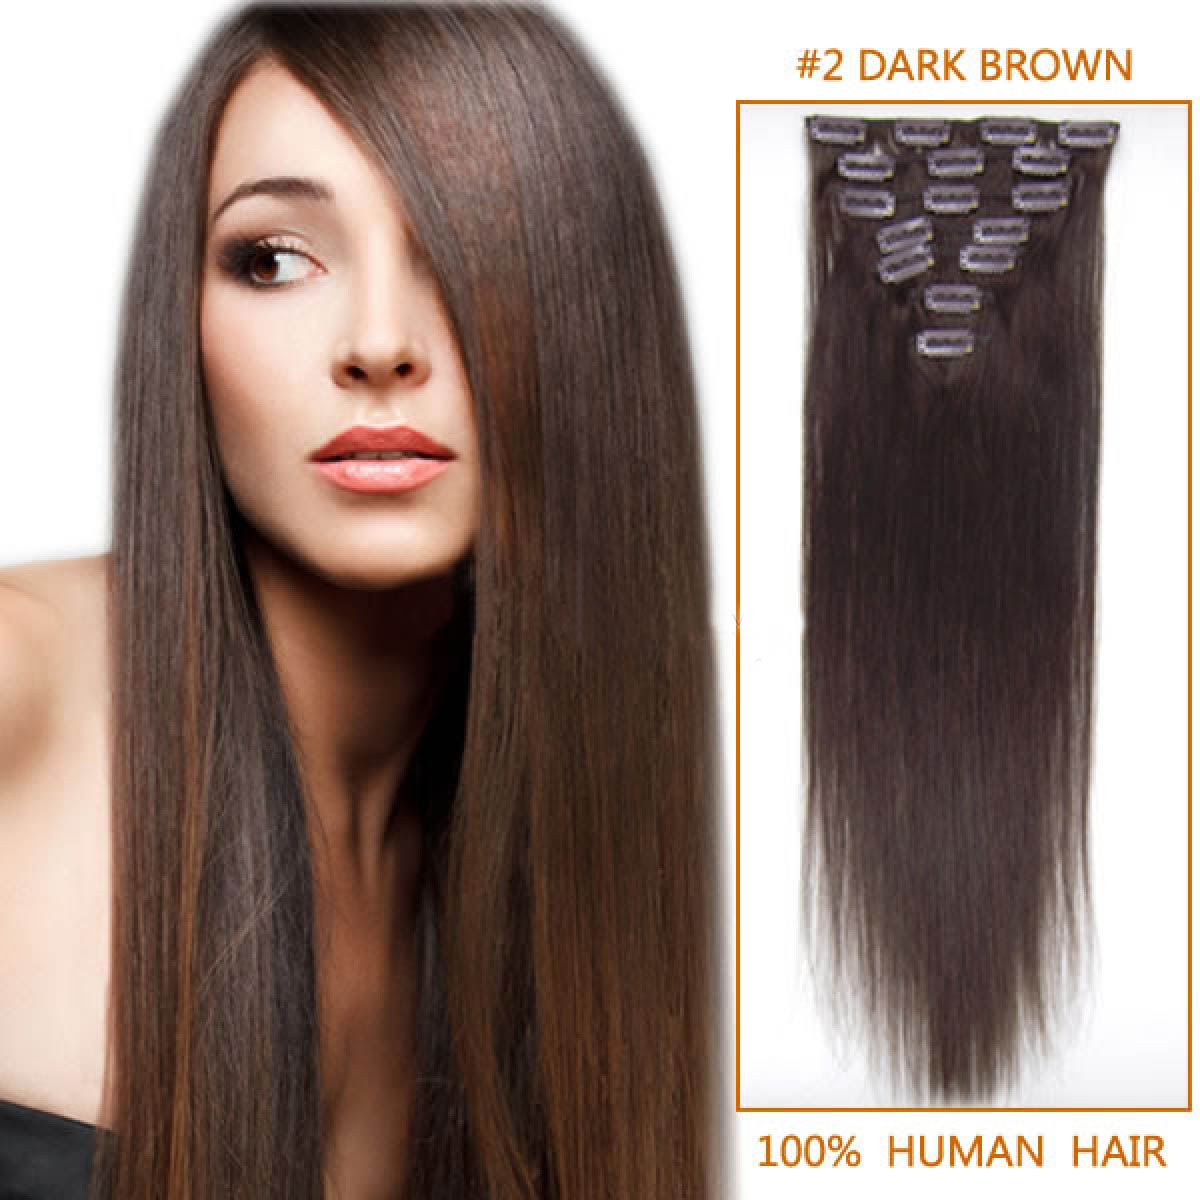 18 Inch #2 Dark Brown Clip In Human Hair Extensions 10pcs